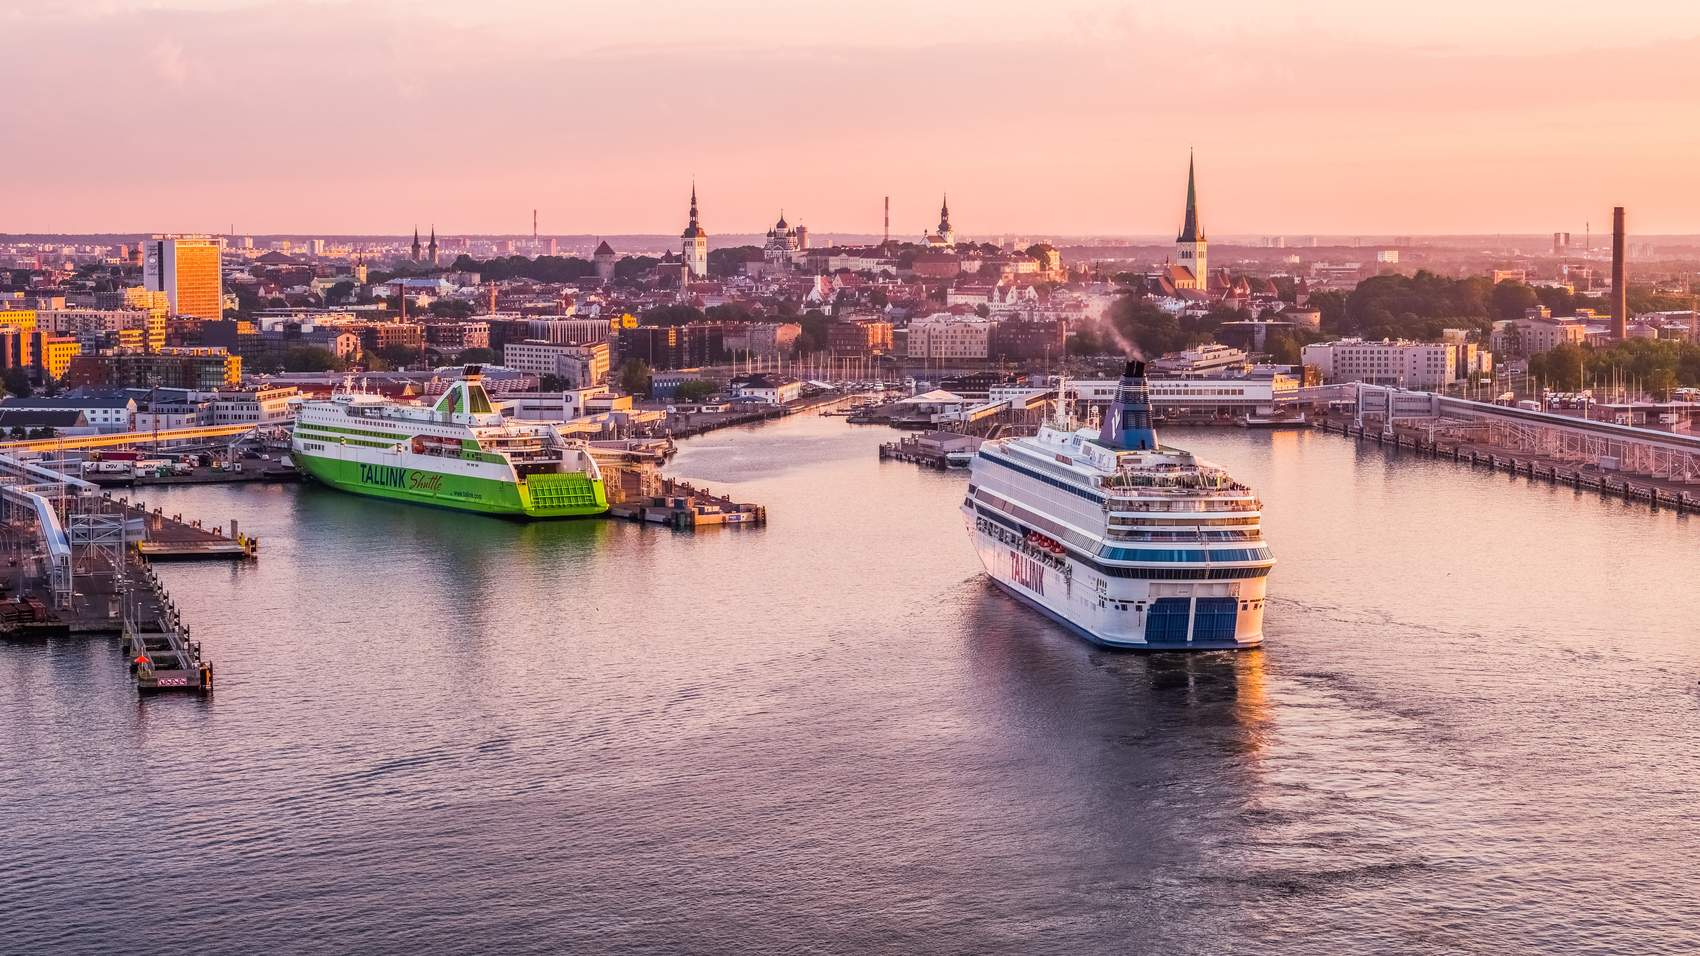 Tenet filming locations in Tallinn, Estonia: sunset on the bay and view of the port Photo: Kaupo Kalda